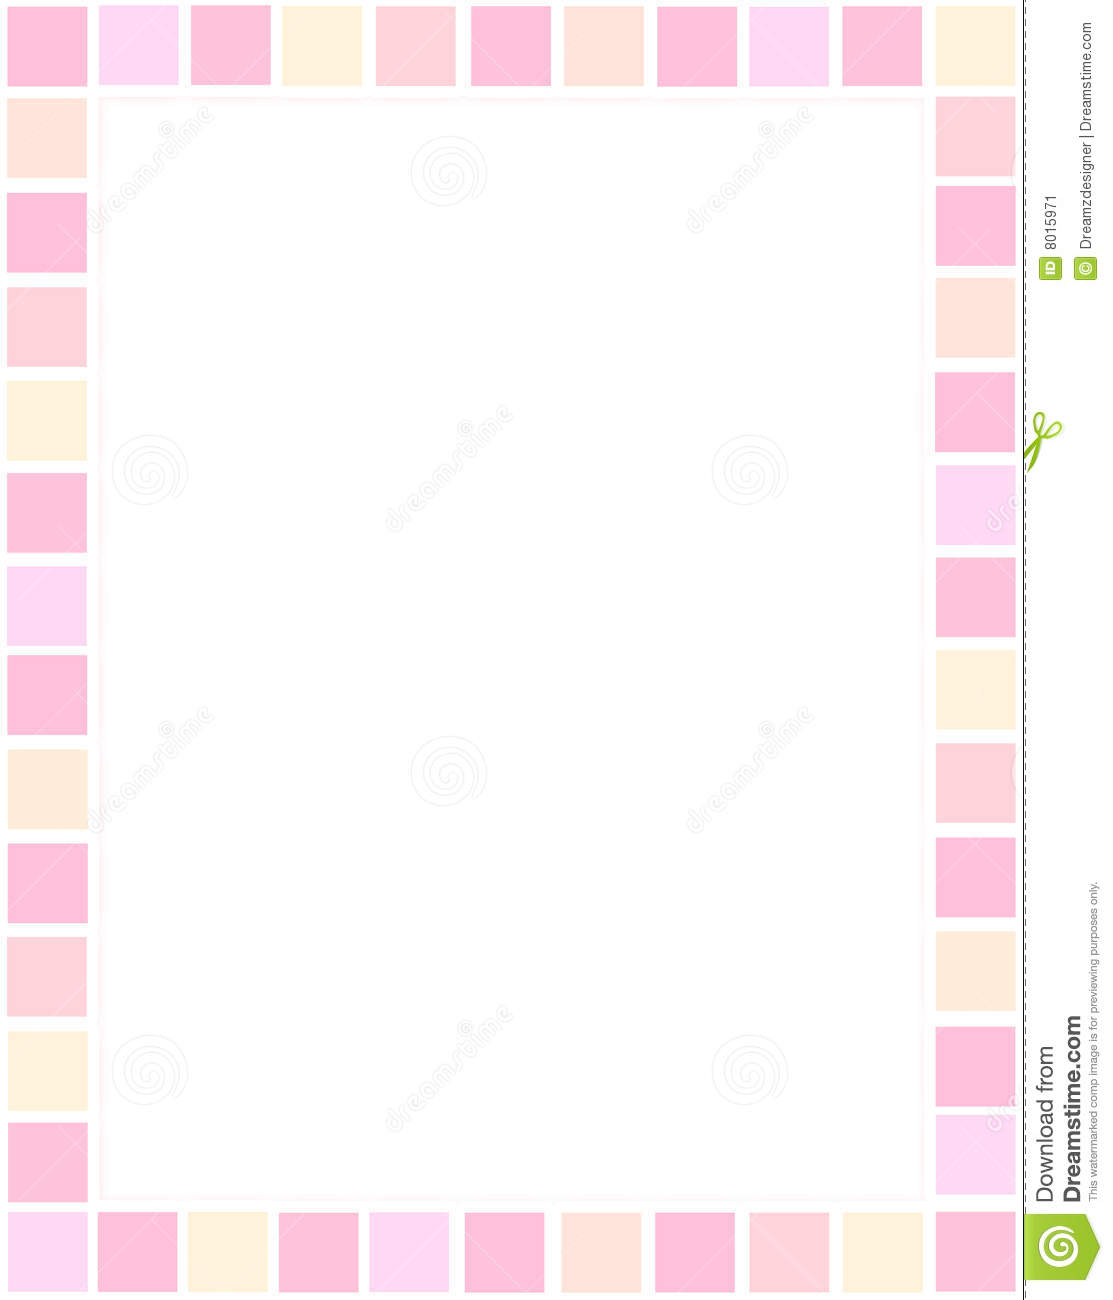 Illustration of colorful rectangle type border.